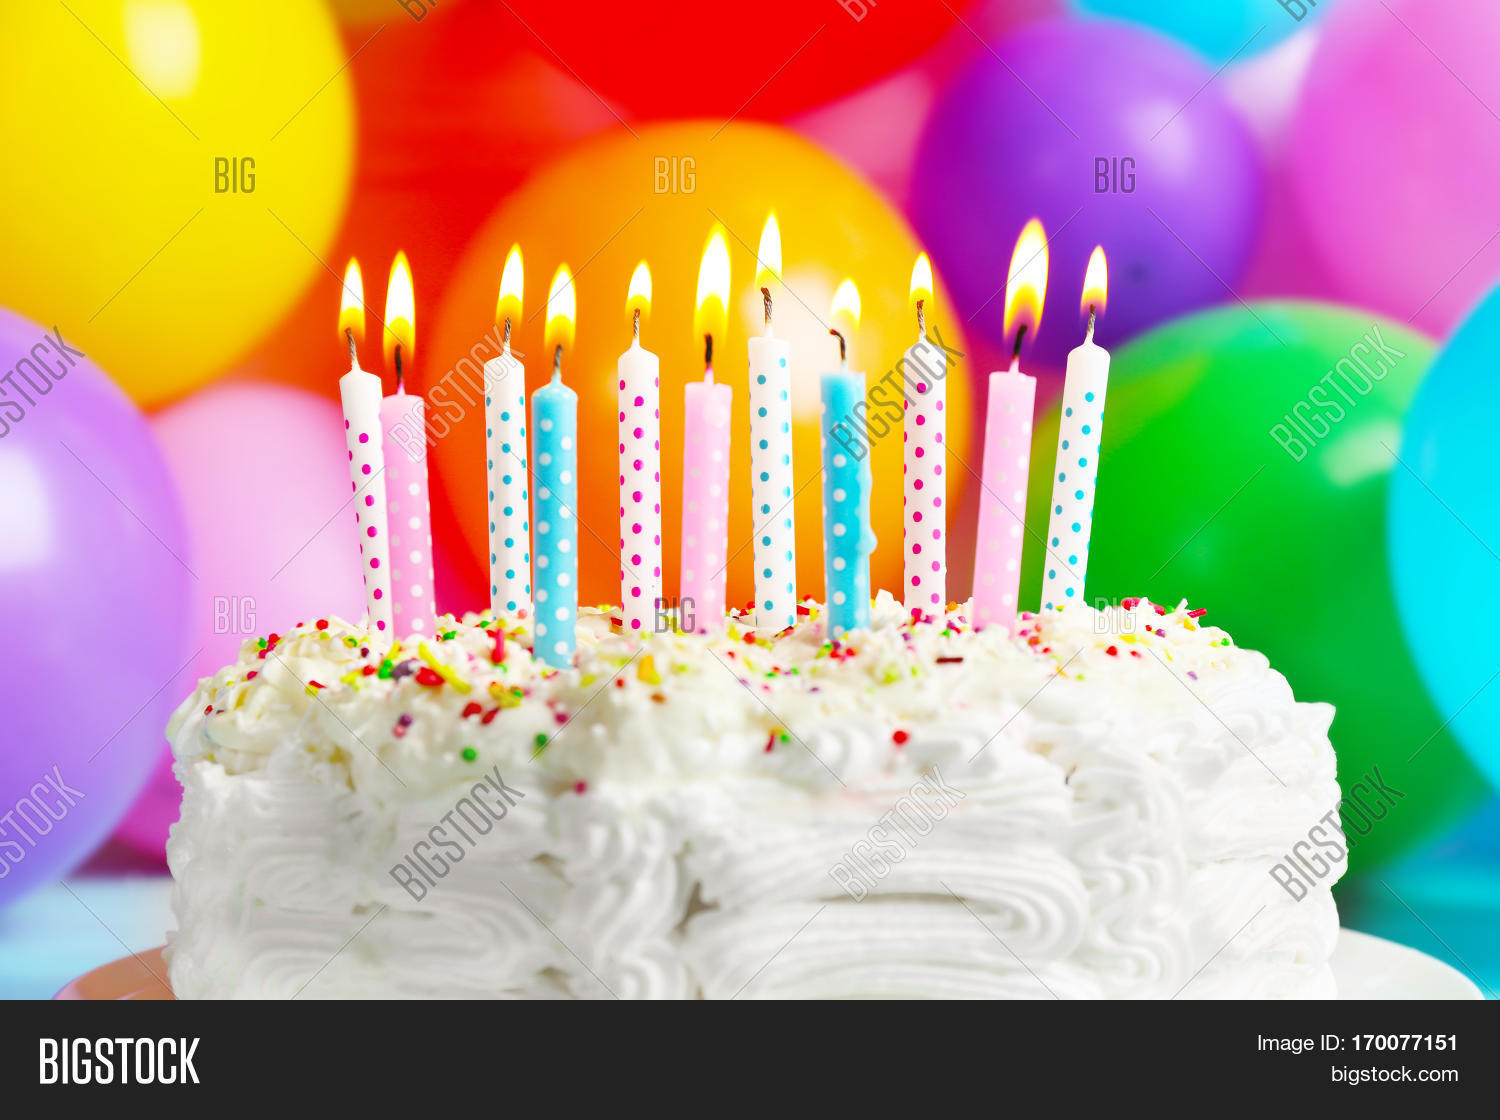 birthday cake with candles and balloons Birthday Cake Candles Image & Photo (Free Trial) | Bigstock birthday cake with candles and balloons